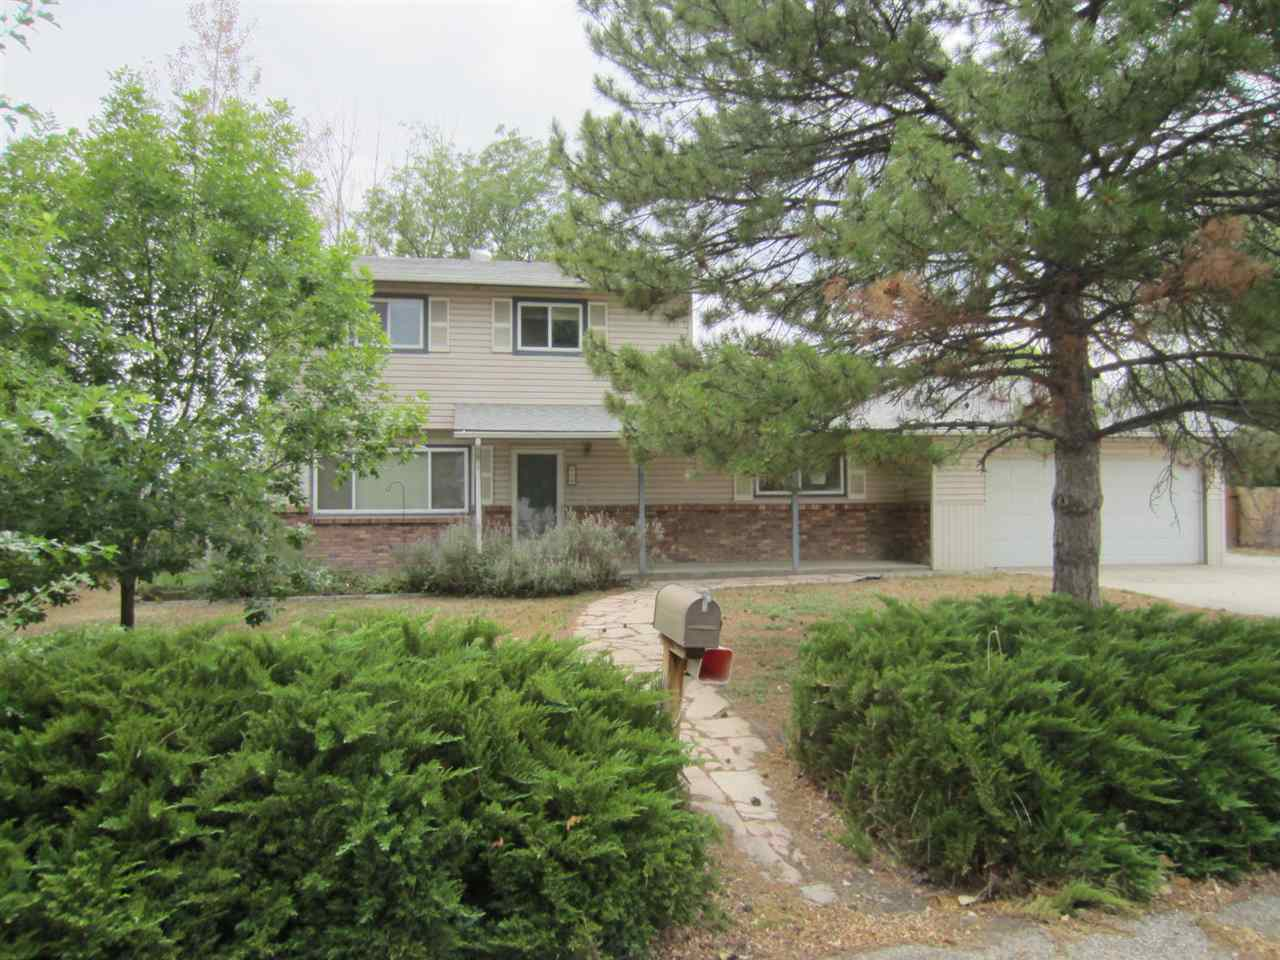 519 31 3/4 Road, Grand Junction, CO 81504